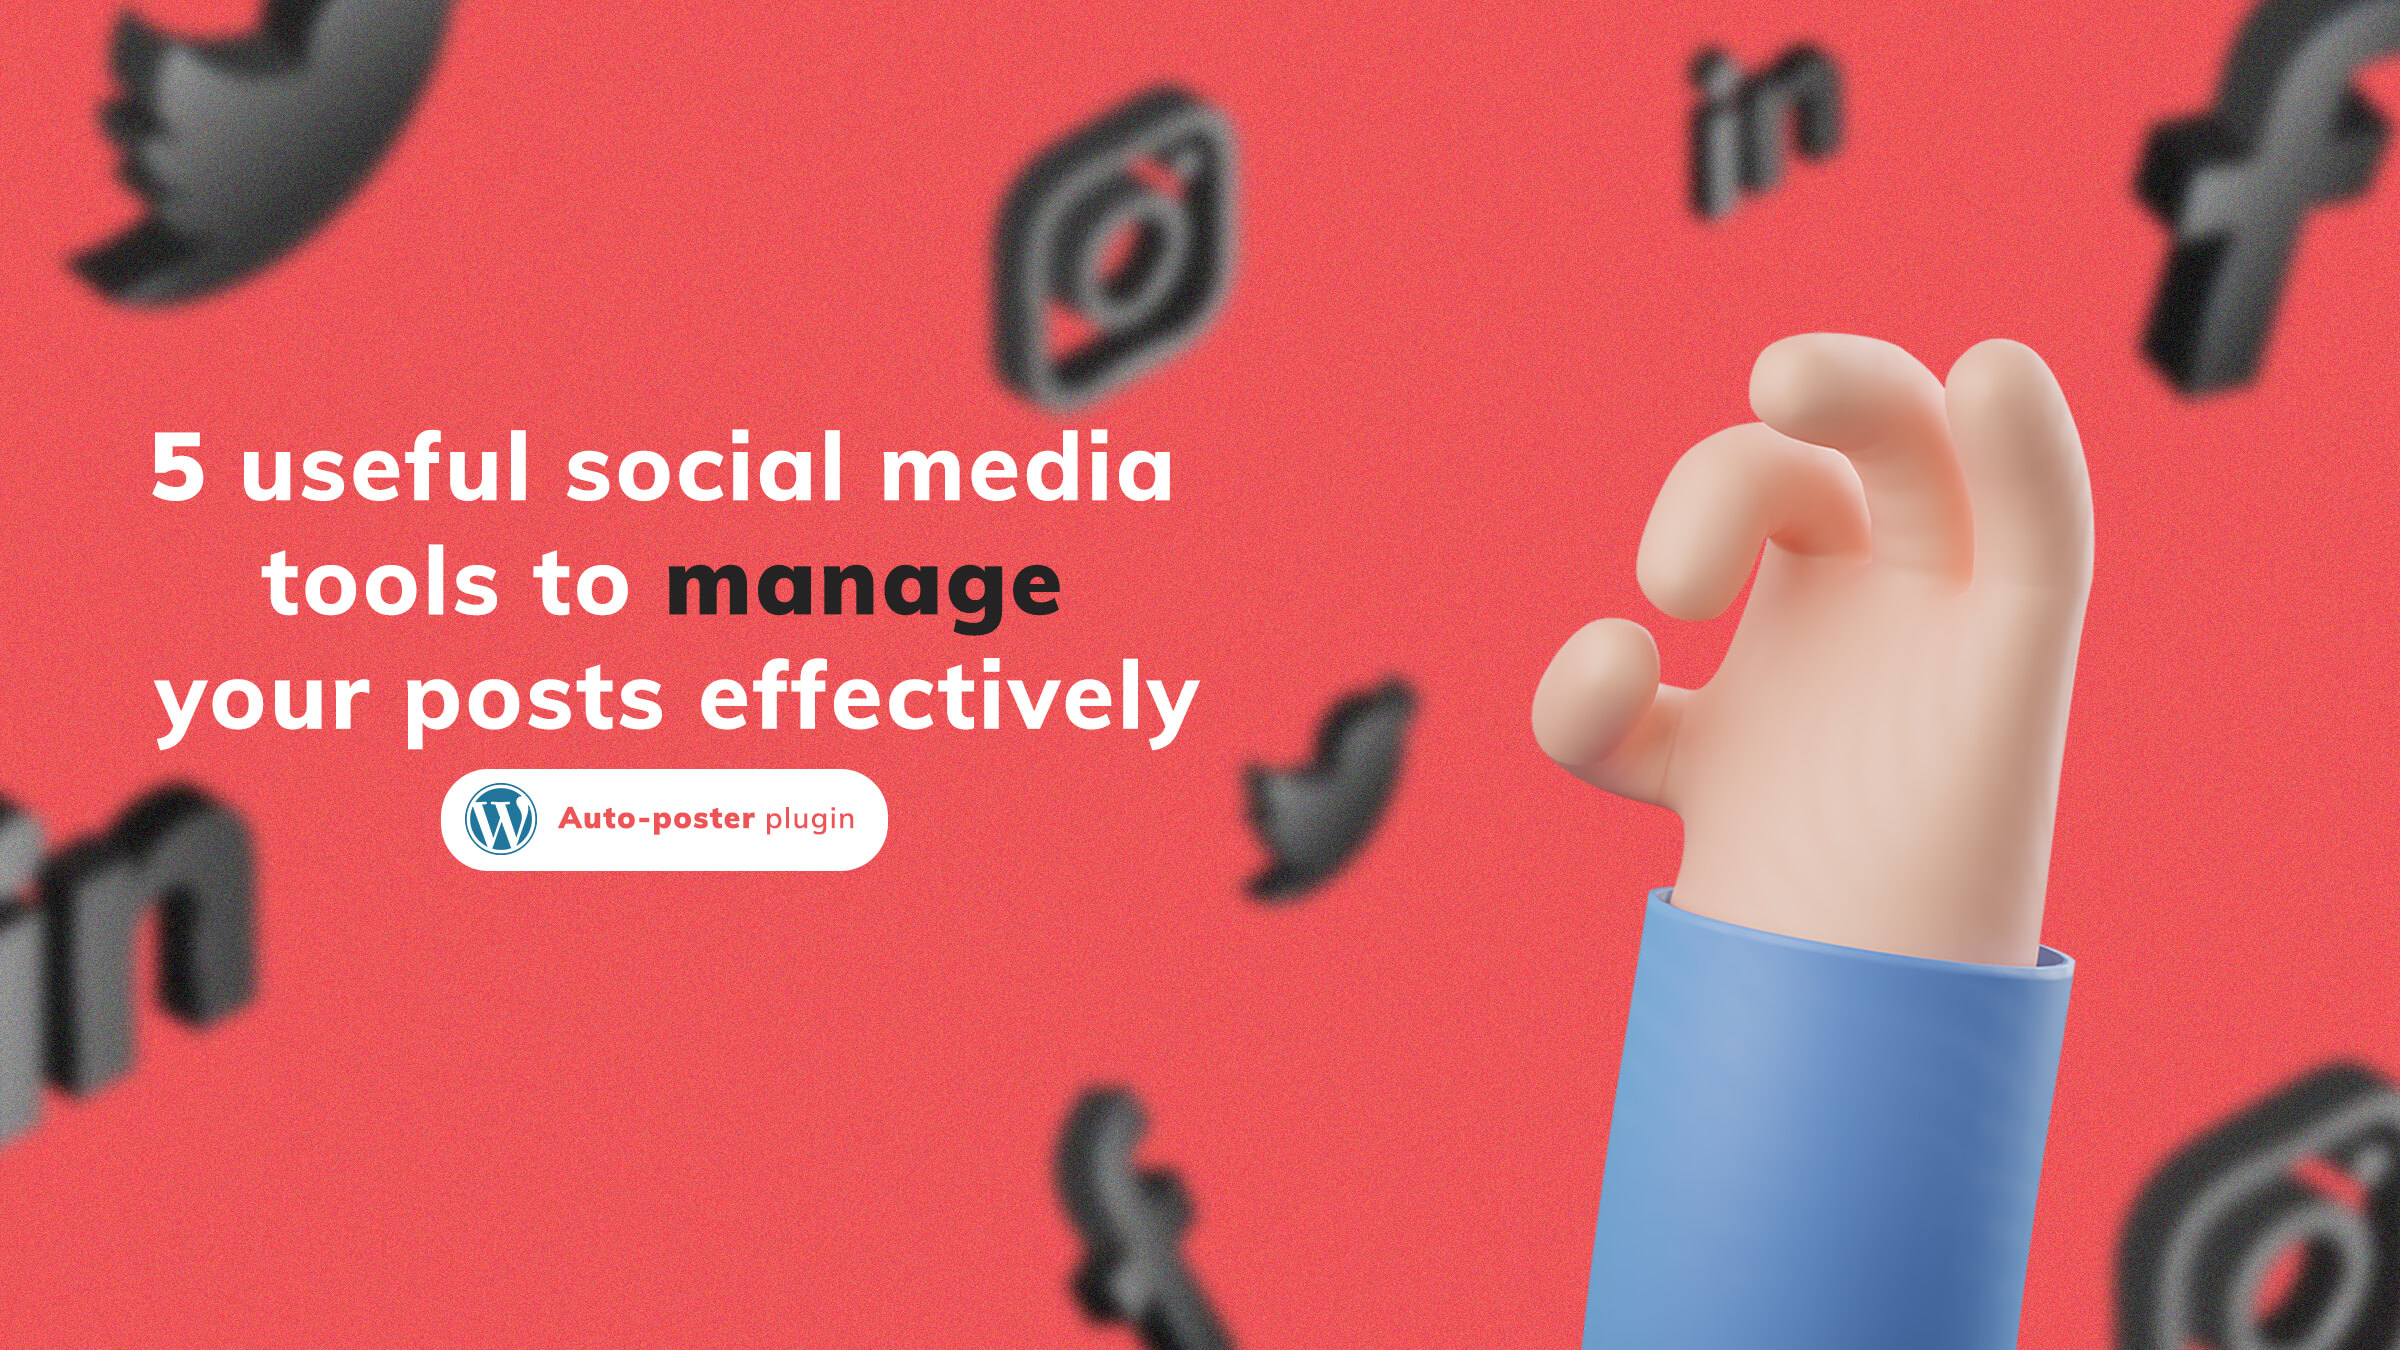 5 useful social media tools to manage your posts effectively